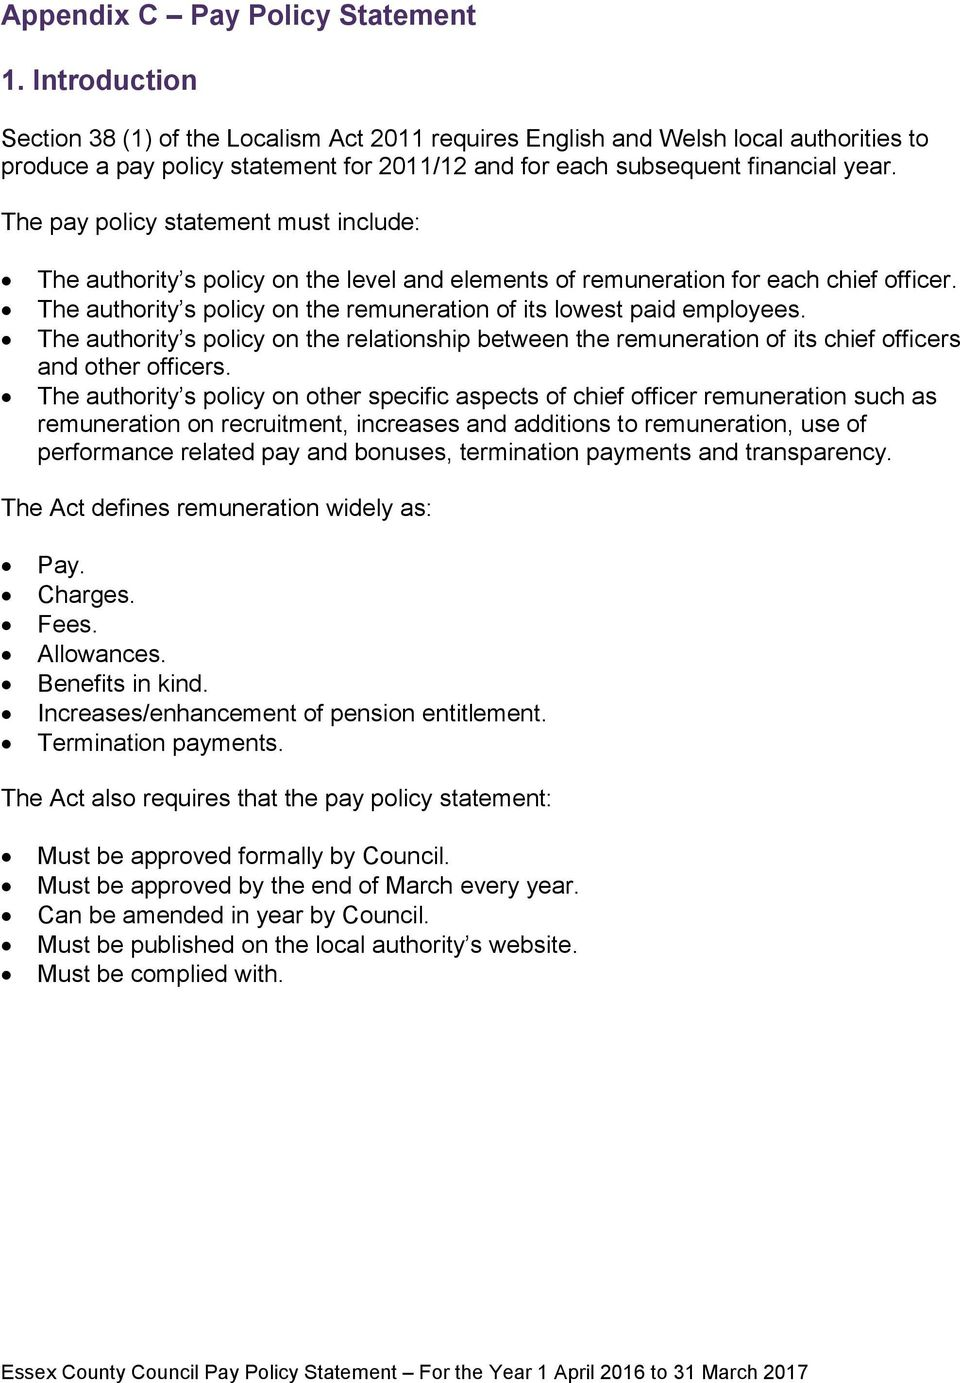 The pay policy statement must include: The authority s policy on the level and elements of remuneration for each chief officer. The authority s policy on the remuneration of its lowest paid employees.